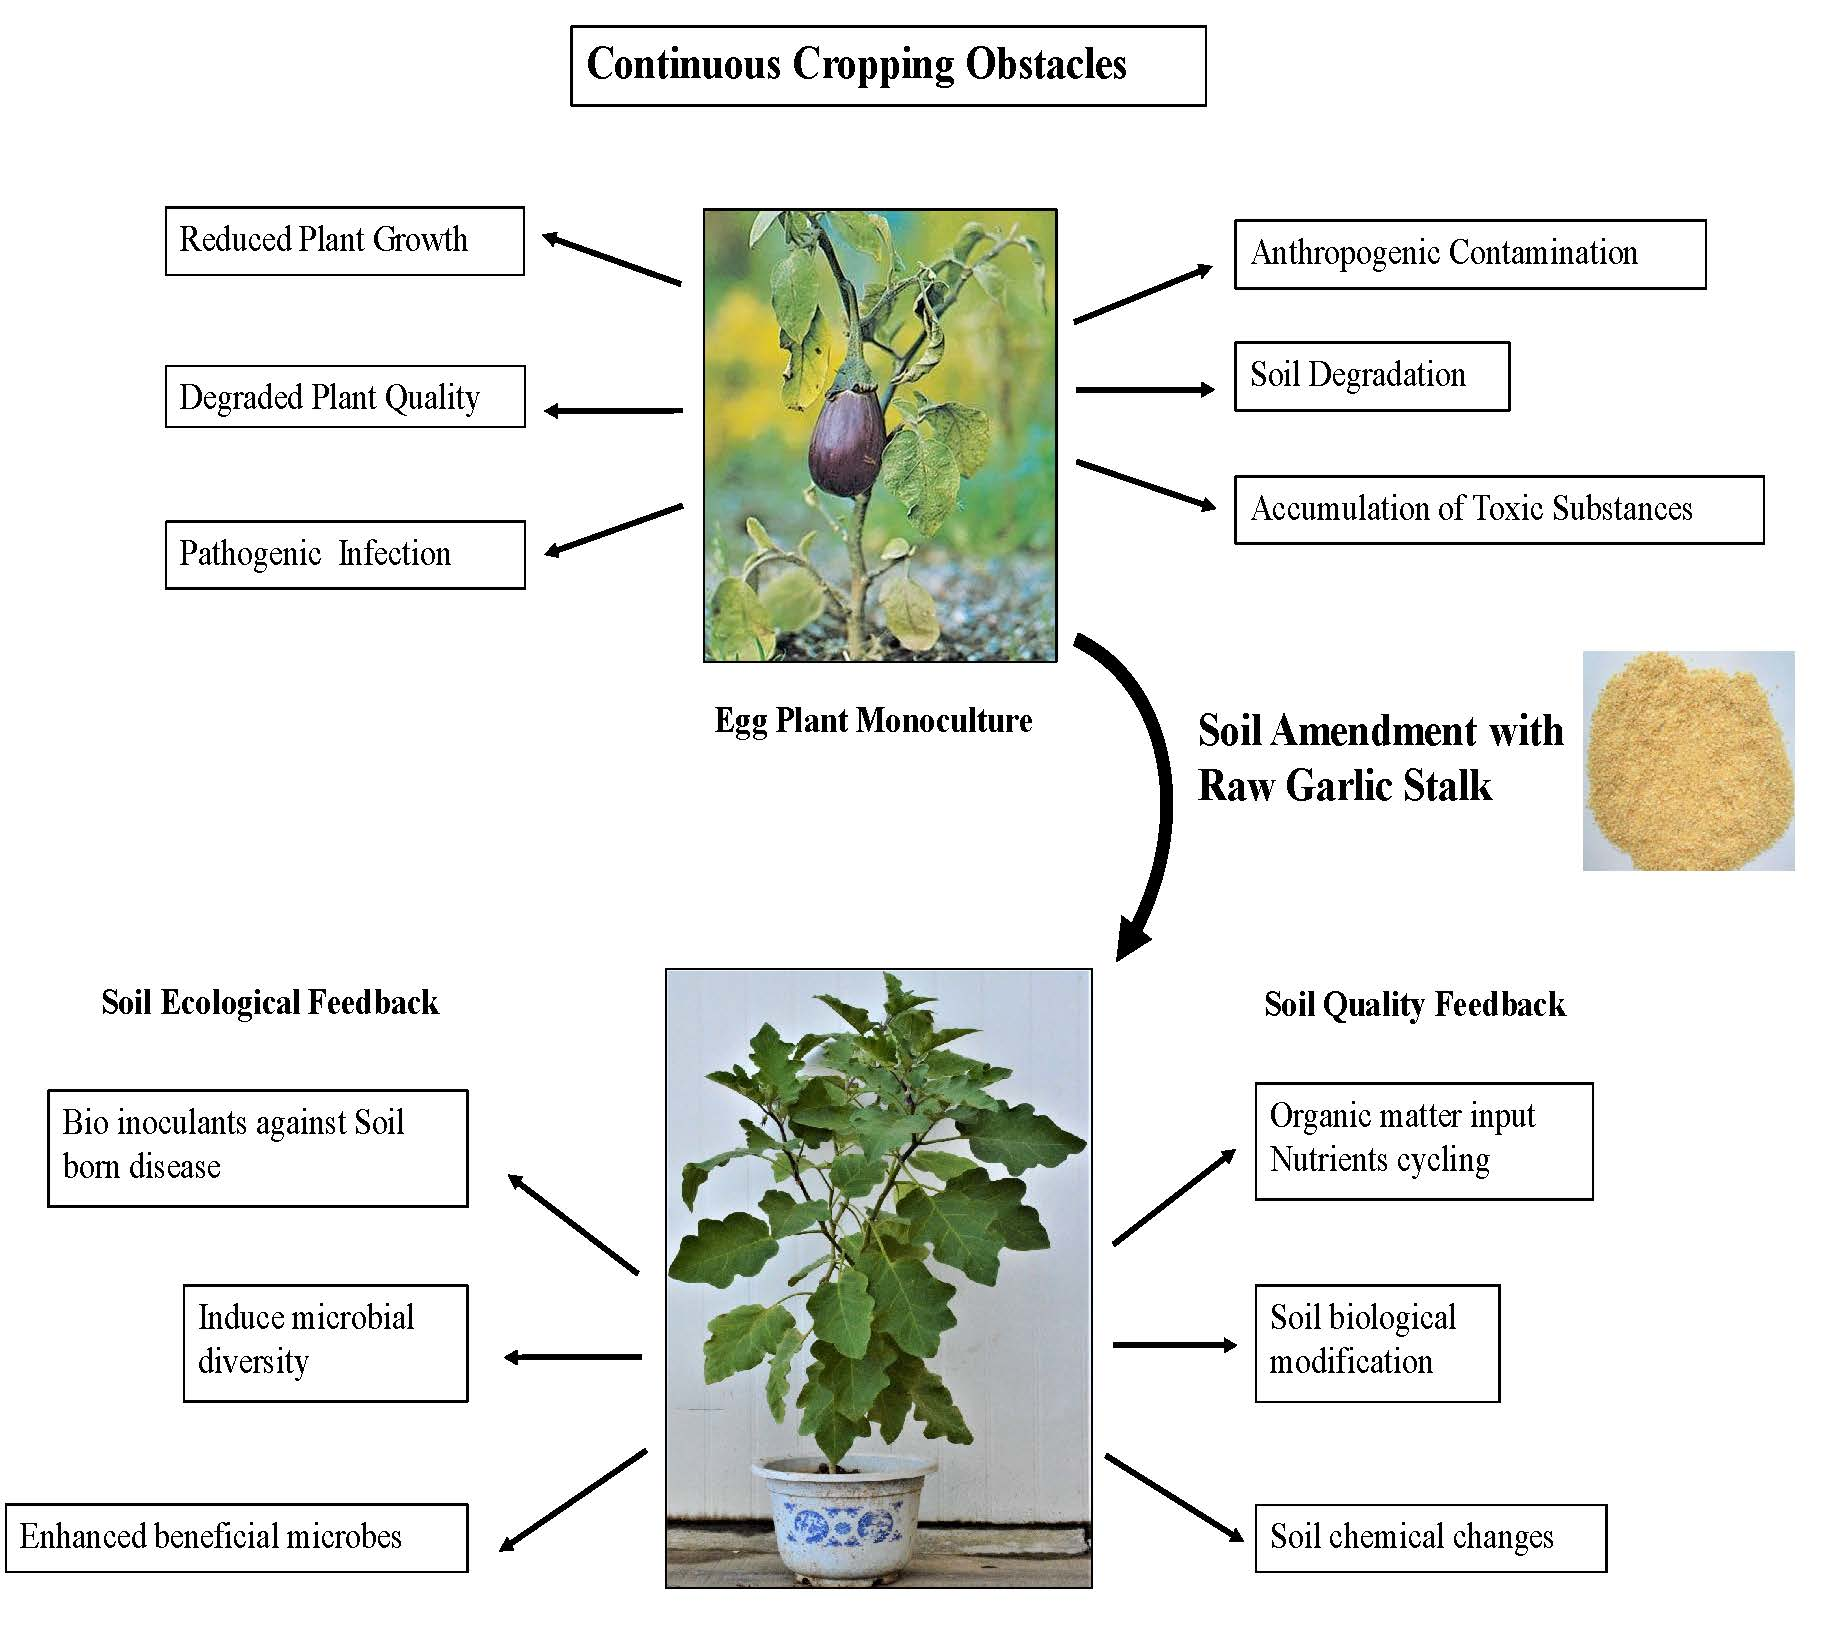 Ijms Free Full Text Changes In The Soil Microbiome In Eggplant Monoculture Revealed By High Throughput Illumina Miseq Sequencing As Influenced By Raw Garlic Stalk Amendment Html